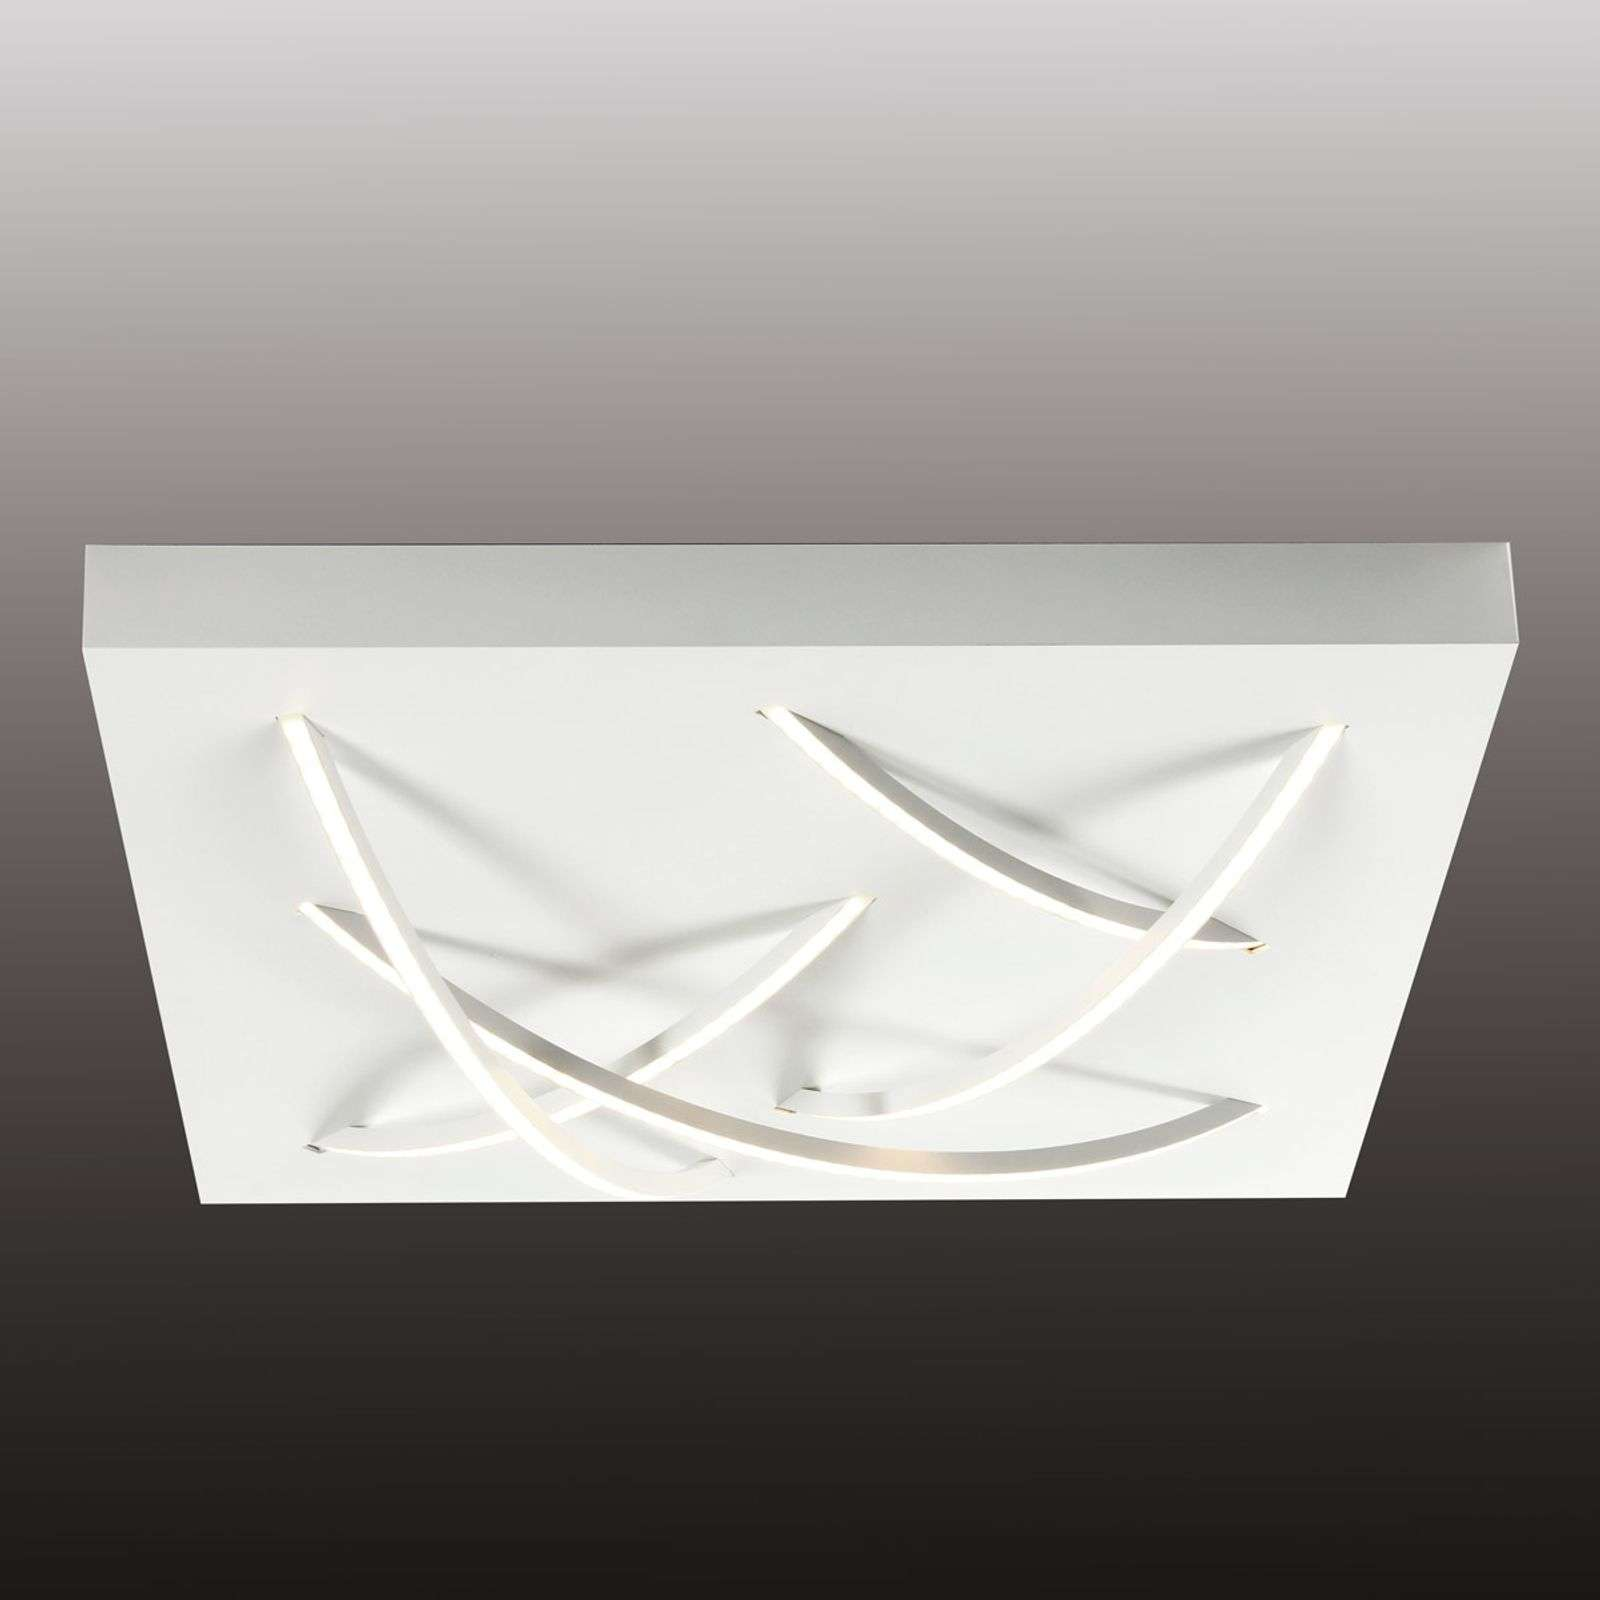 Plafonnier LED Curved carré blanc